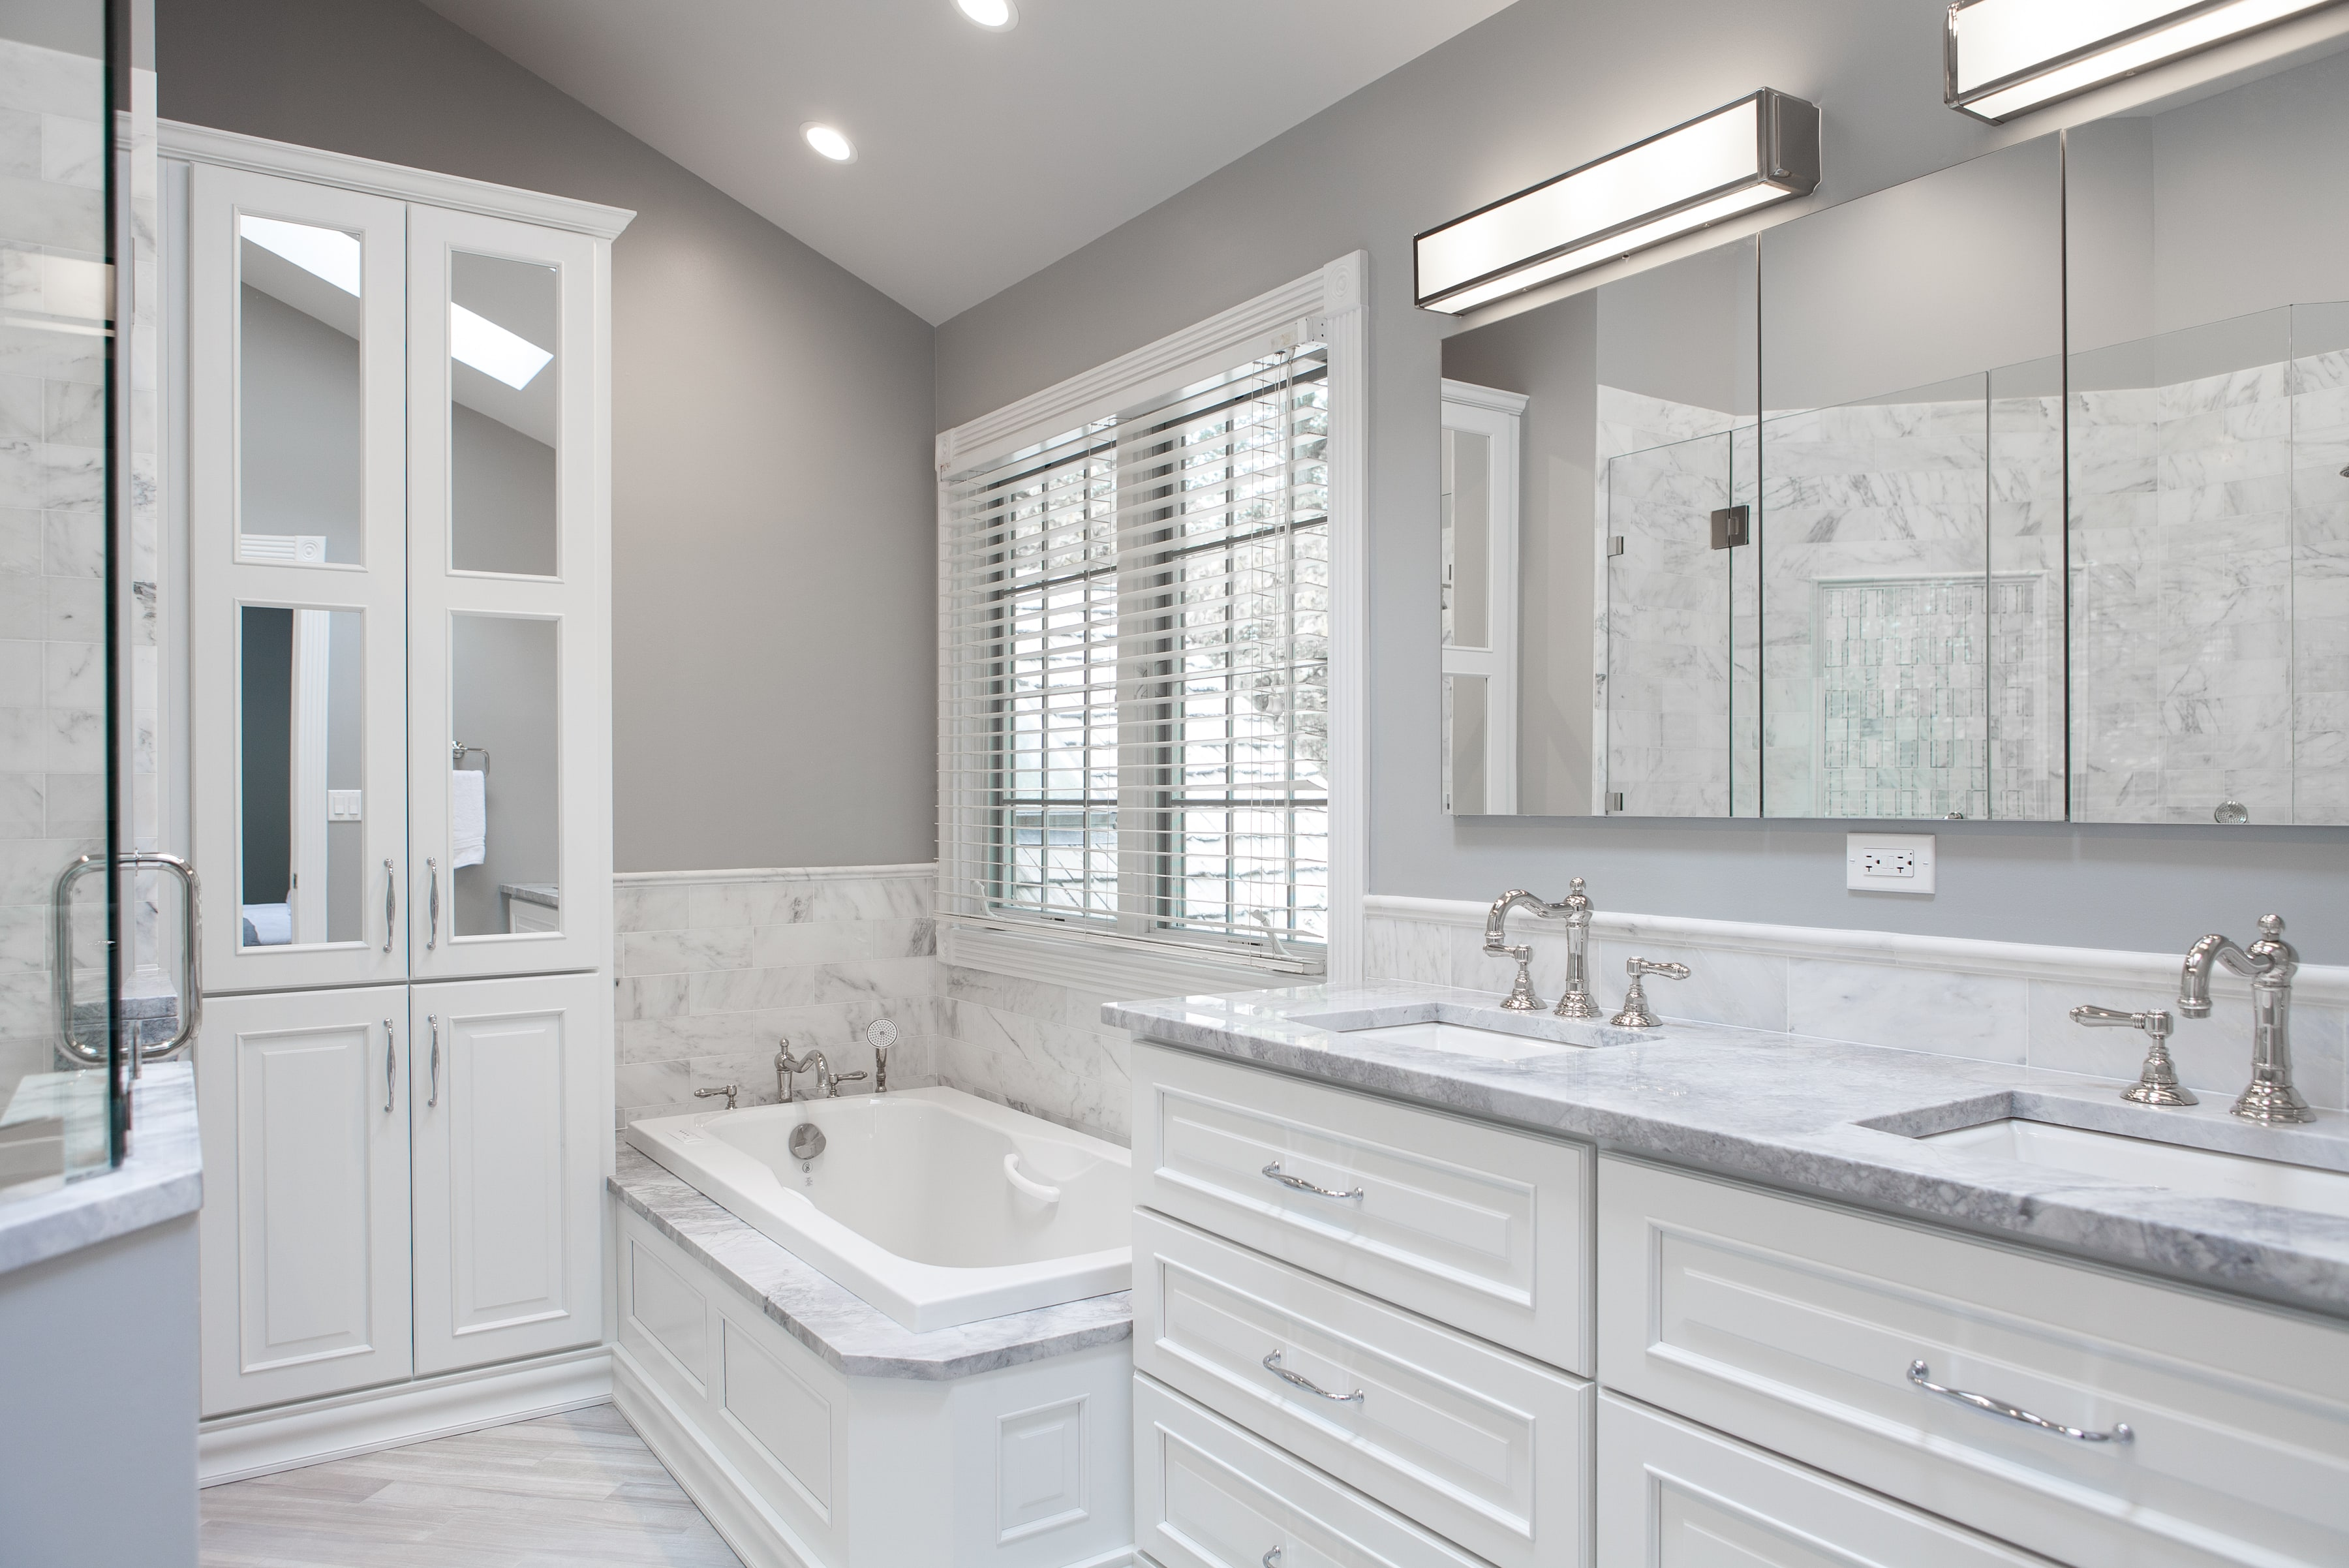 How much does a bathroom remodel cost home design ideas for Bathroom remodel questions